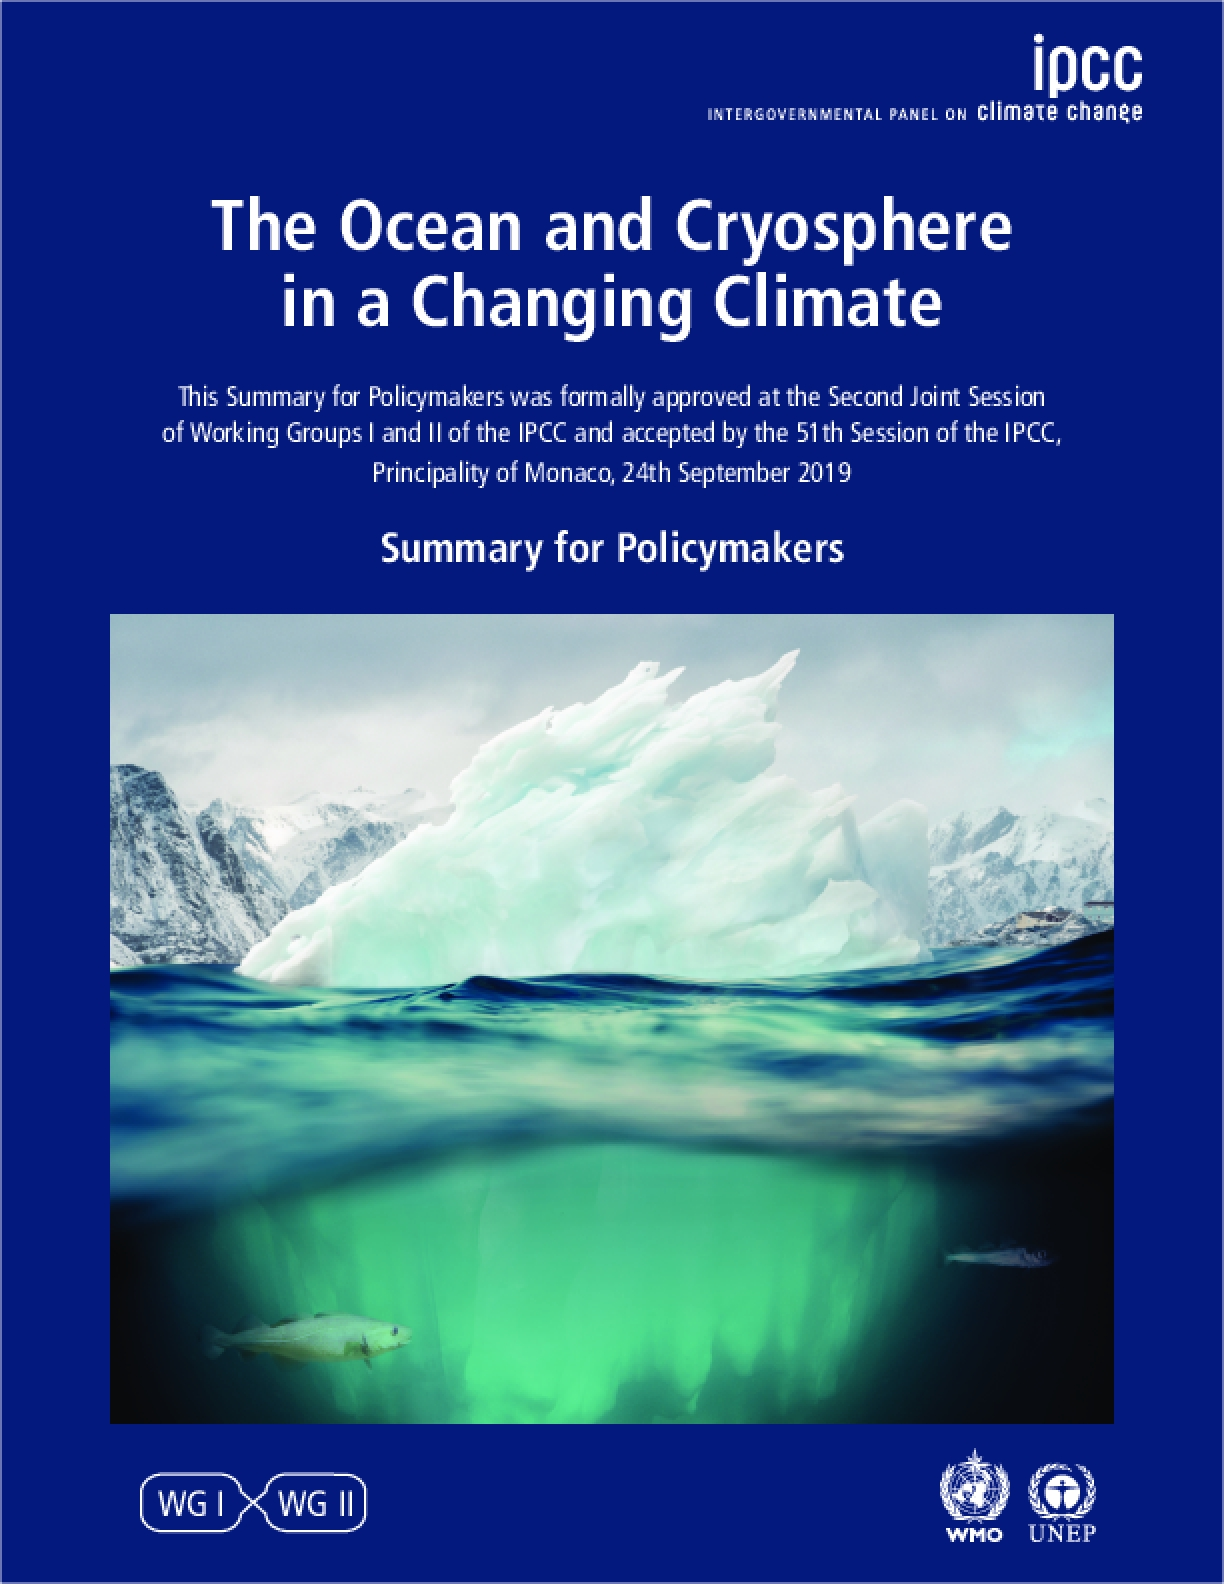 IPCC Special Report on the Ocean and Cryosphere in a Changing Climate: Summary for Policymakers